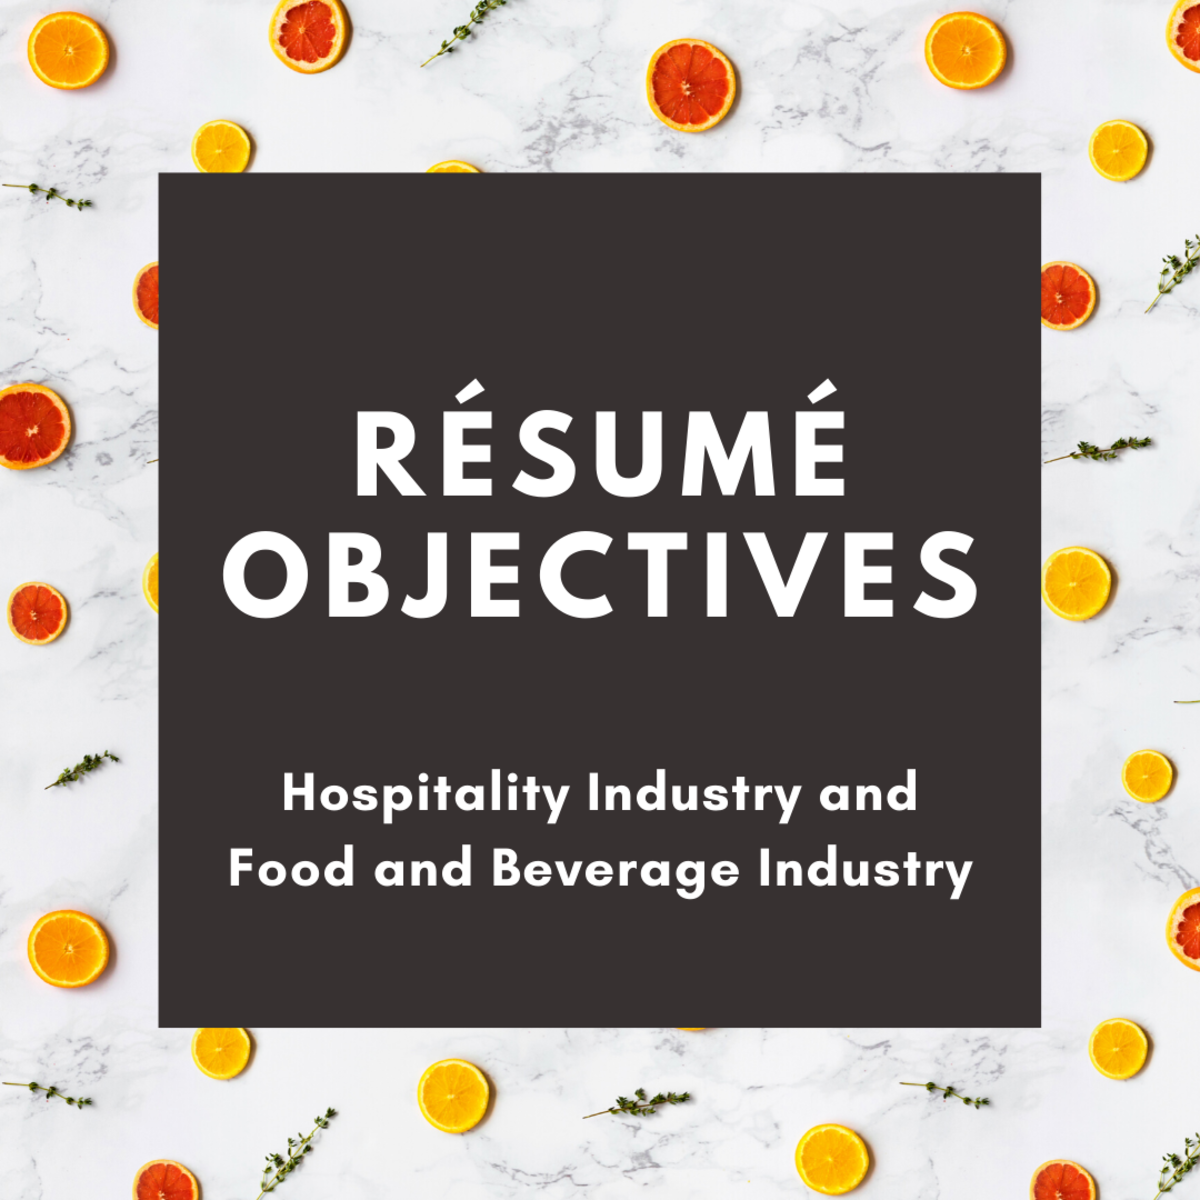 Sample Objectives for a Résumé for the Hospitality Industry